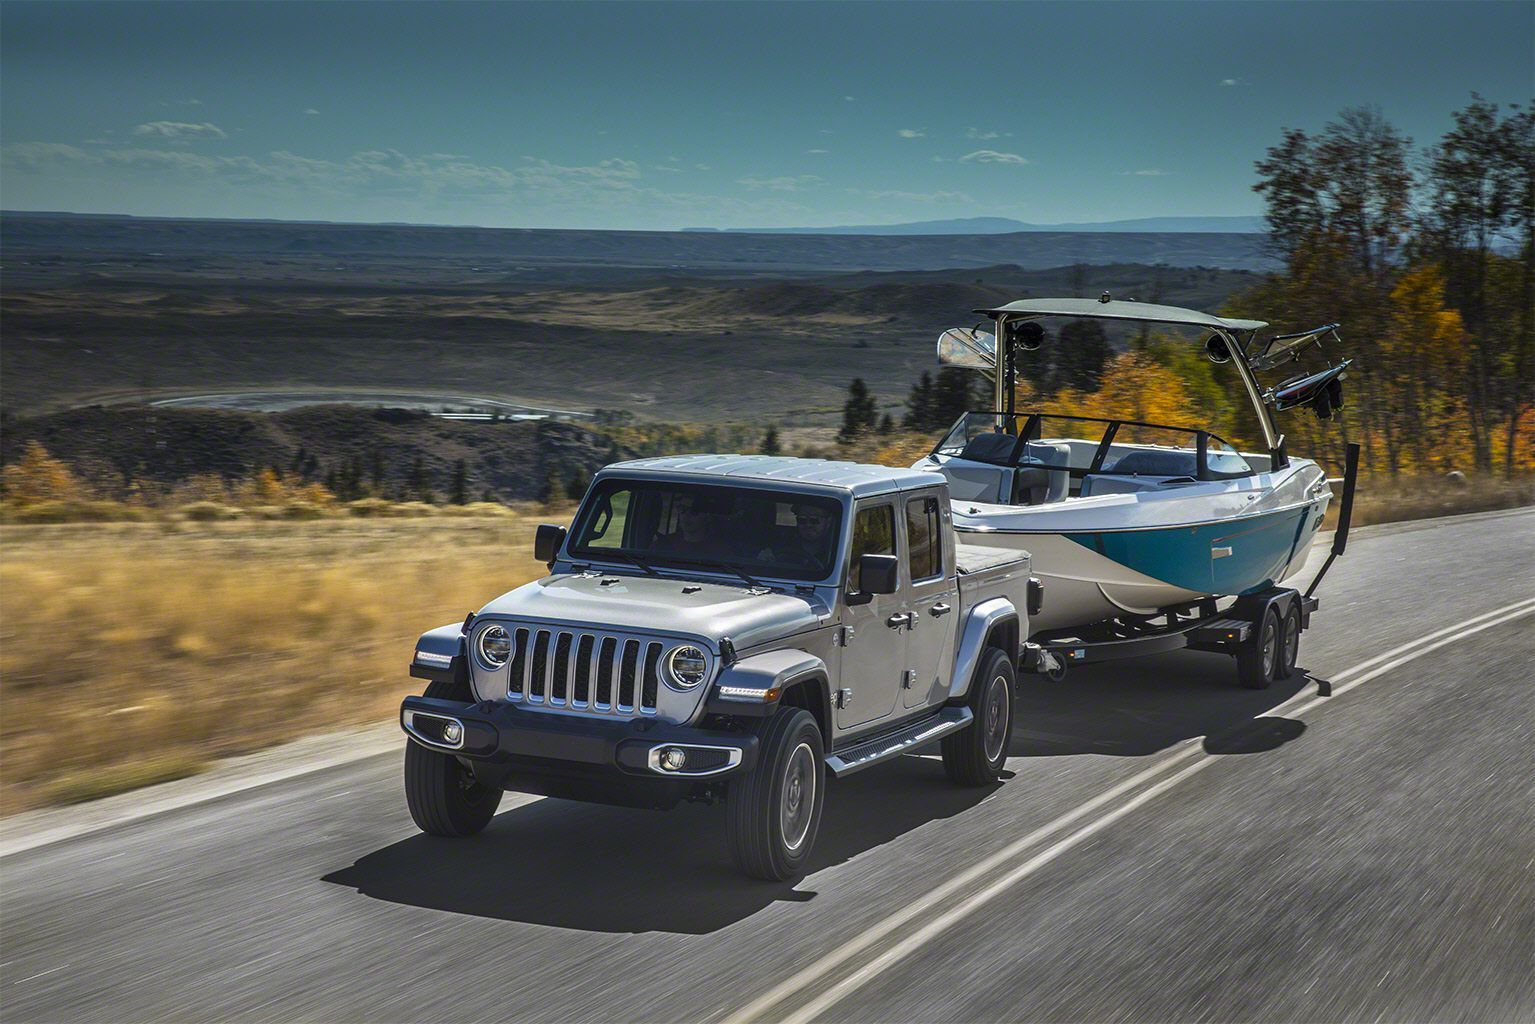 Why The Diesel Jeep Gladiator Pickup Tows Less Than The Gas Engine